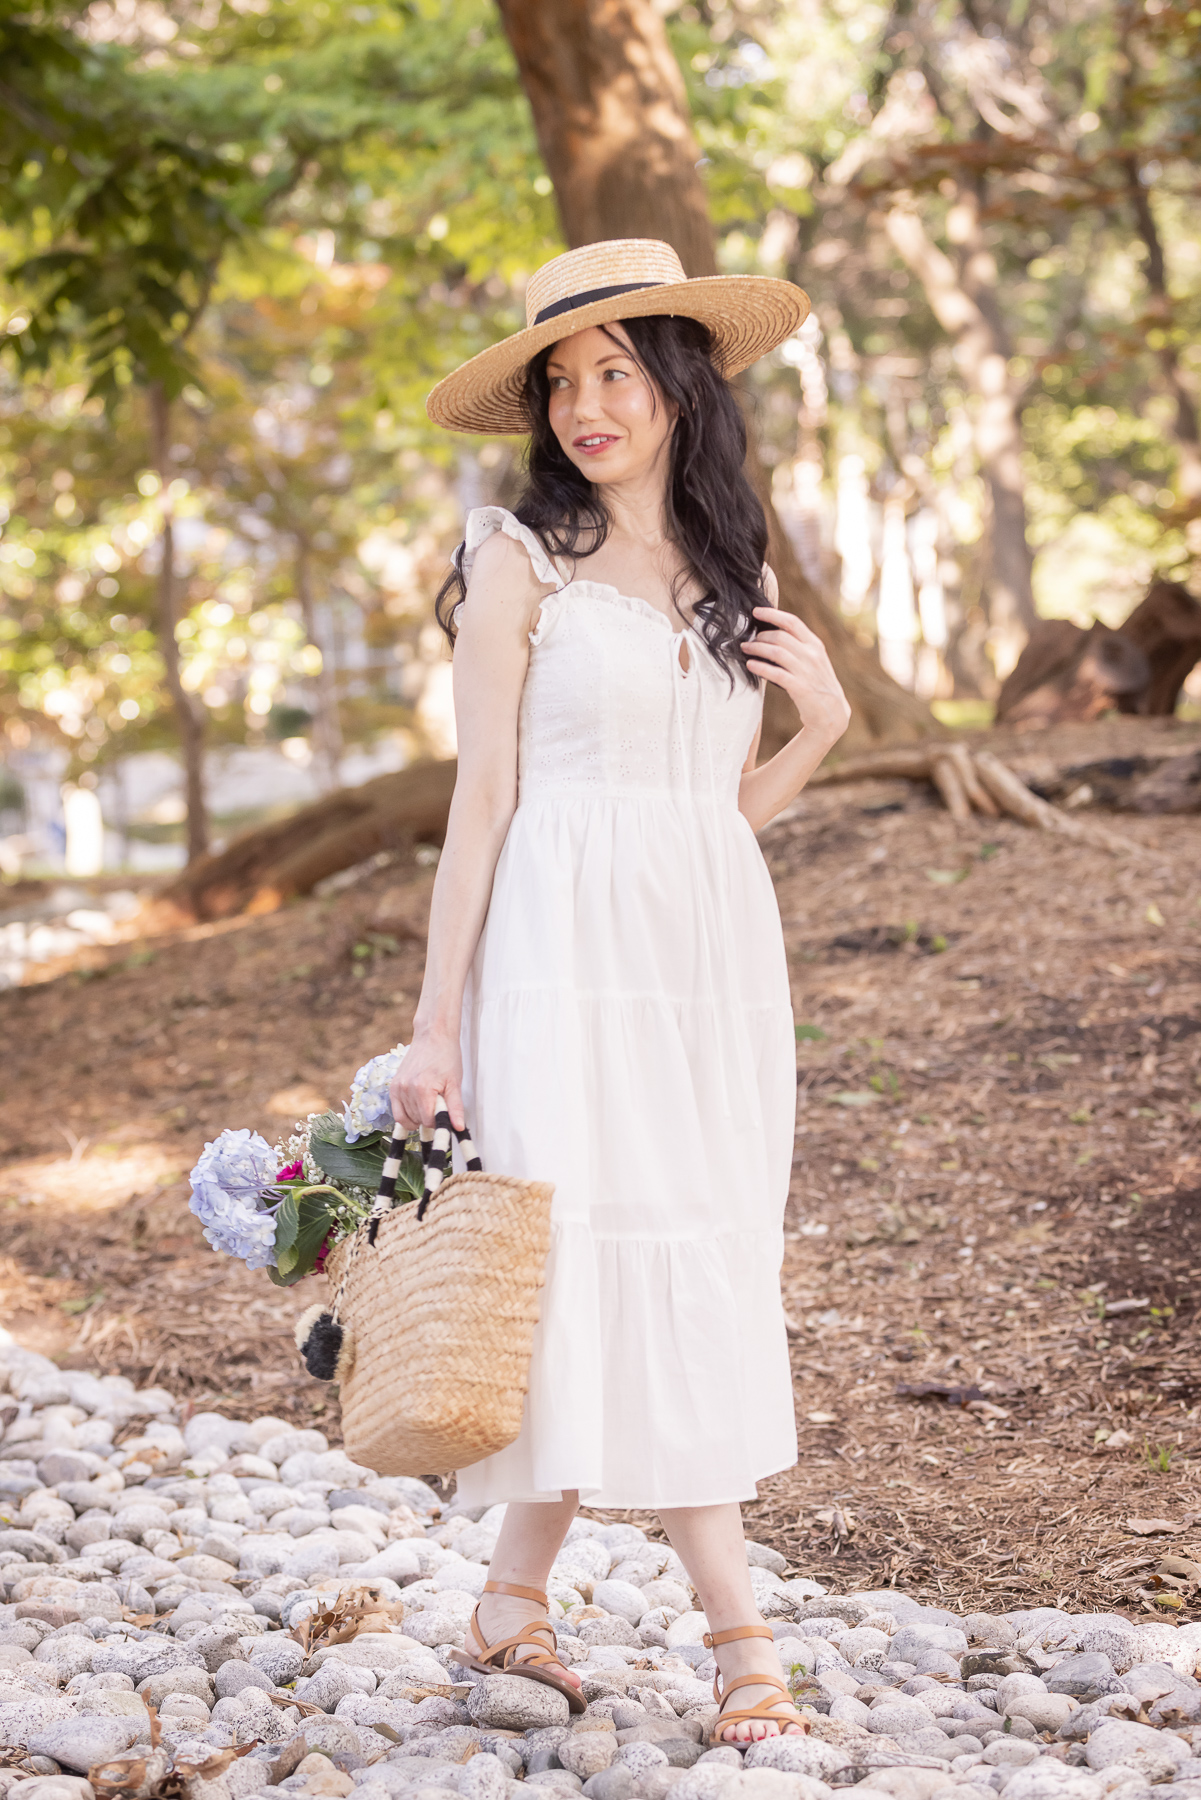 Simple Retro Cottagecore Dress styled by top Dallas fashion blogger, Pretty Little Shoppers